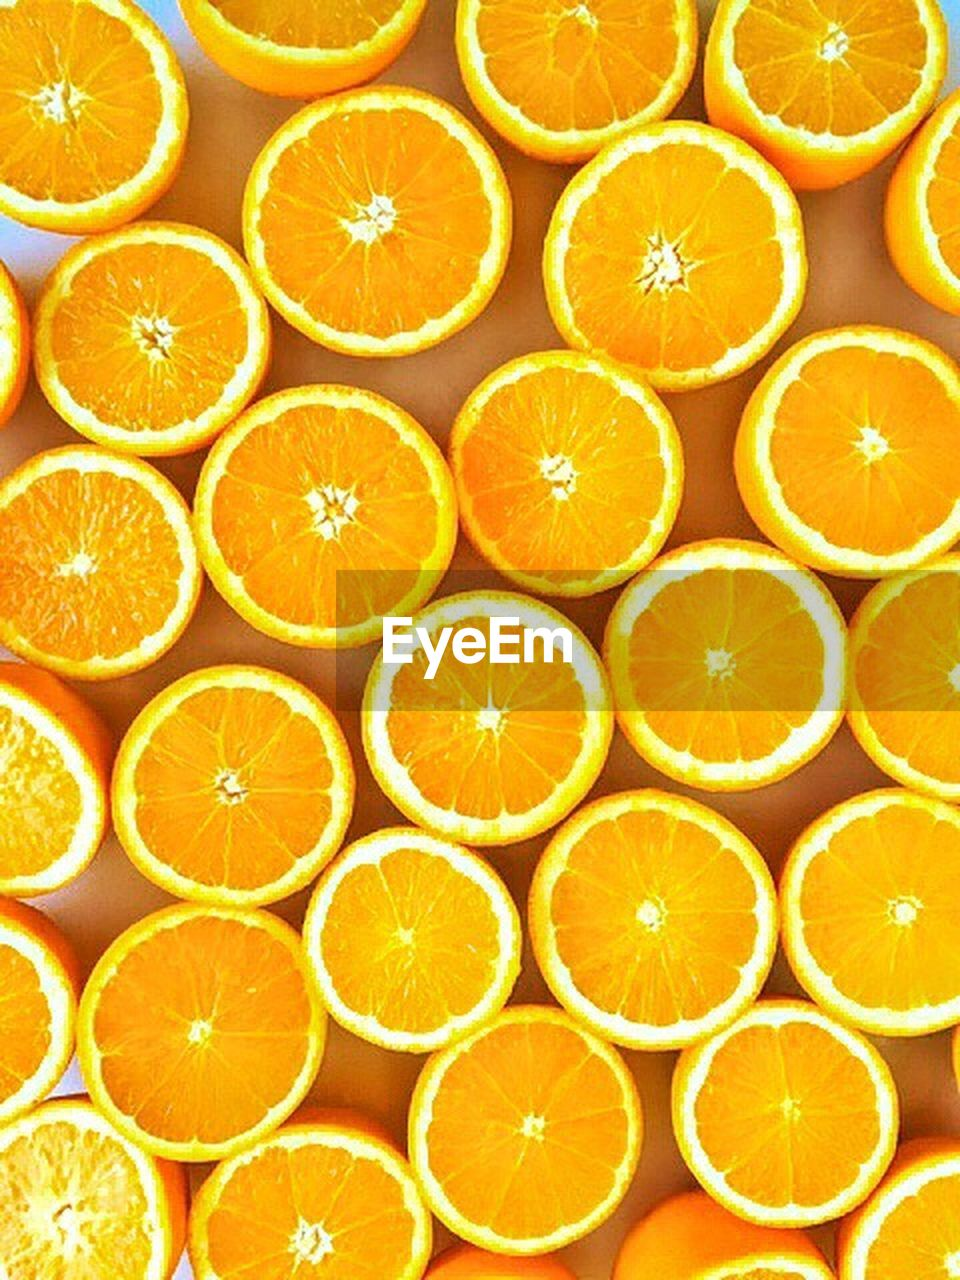 healthy eating, food, wellbeing, food and drink, fruit, citrus fruit, orange color, full frame, freshness, orange - fruit, no people, backgrounds, large group of objects, orange, slice, cross section, directly above, still life, yellow, abundance, antioxidant